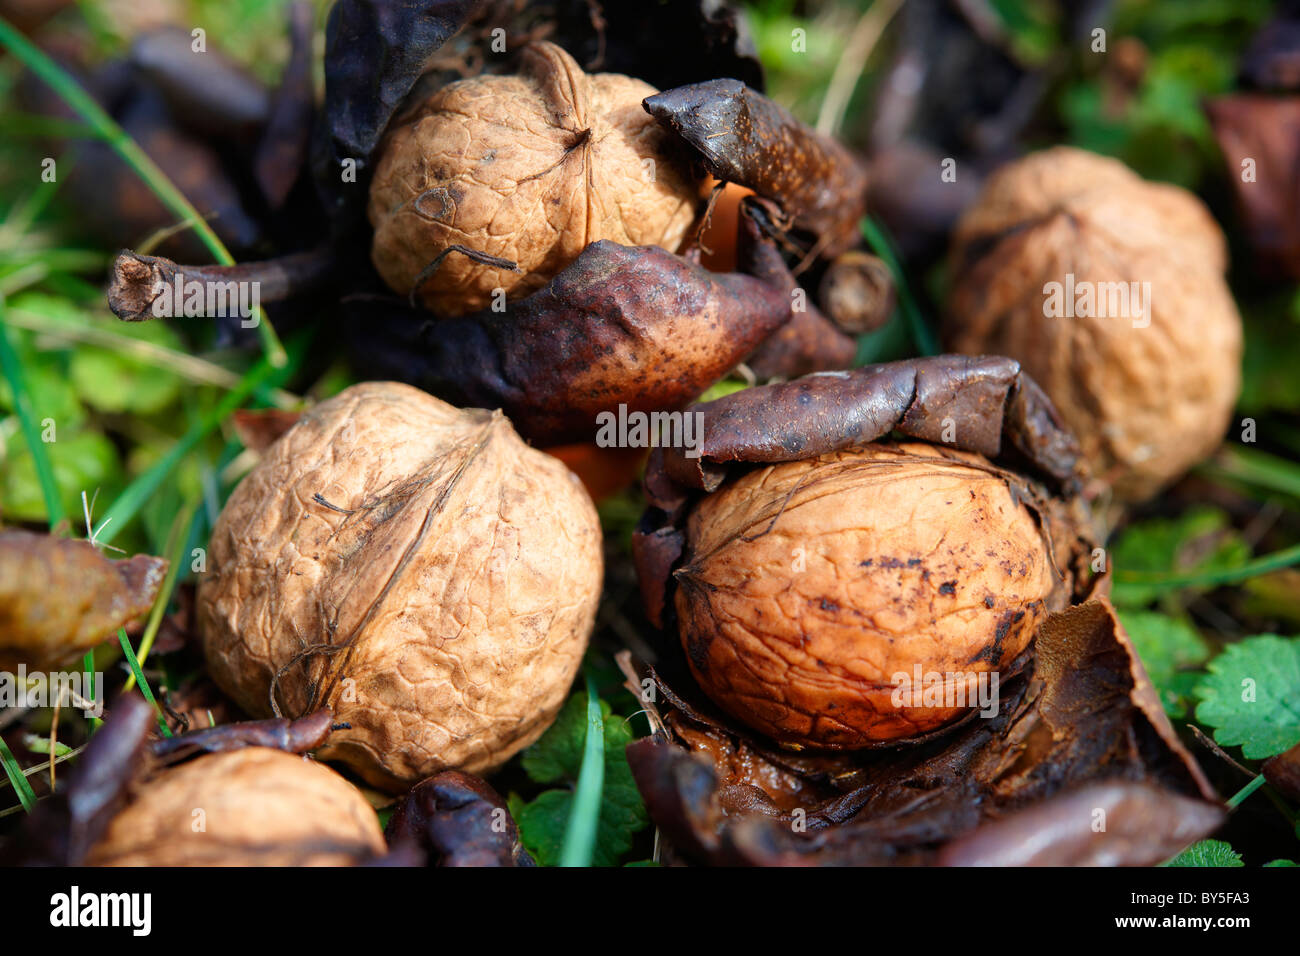 Fresh Walnuts fallen from a tree - Stock Image